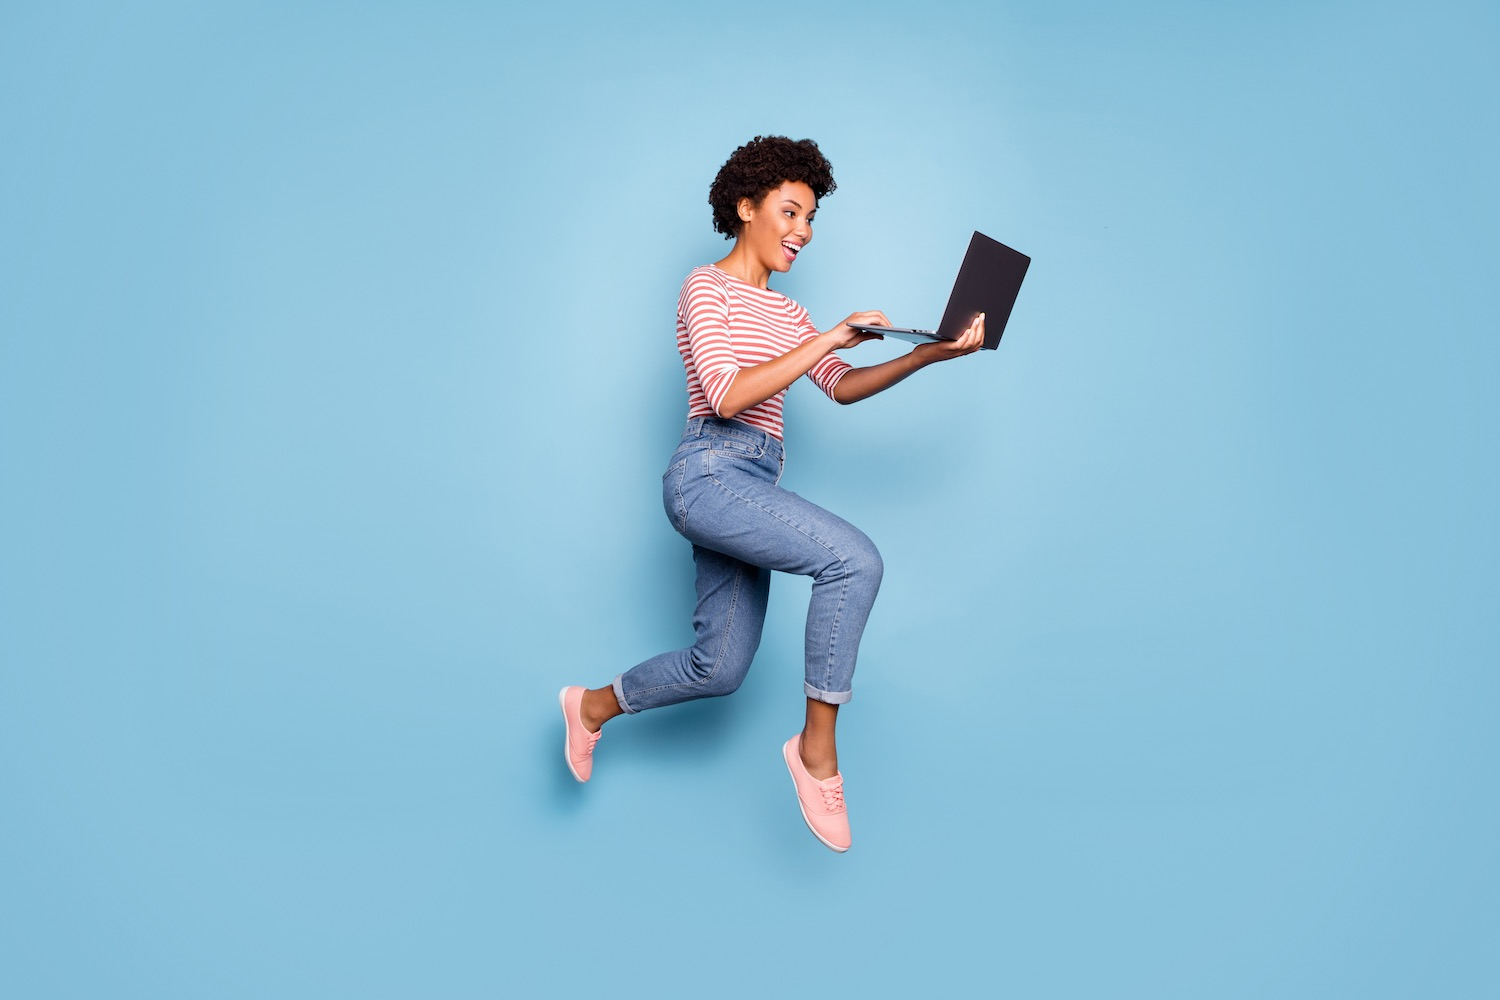 A woman hopping while holding a laptop in front of a blue background